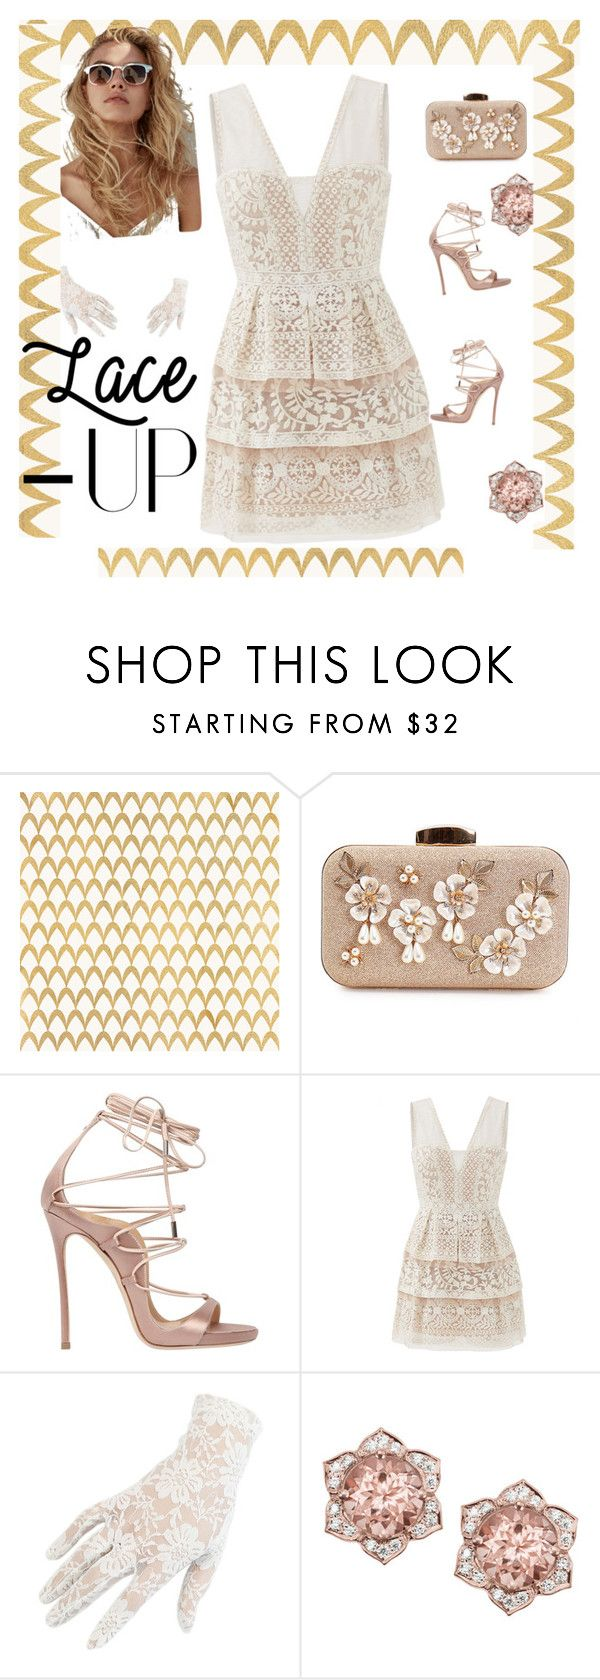 """""""Untitled #68"""" by amiraahmetovic ❤ liked on Polyvore featuring Barclay Butera, Dsquared2, BCBGMAXAZRIA and Black"""